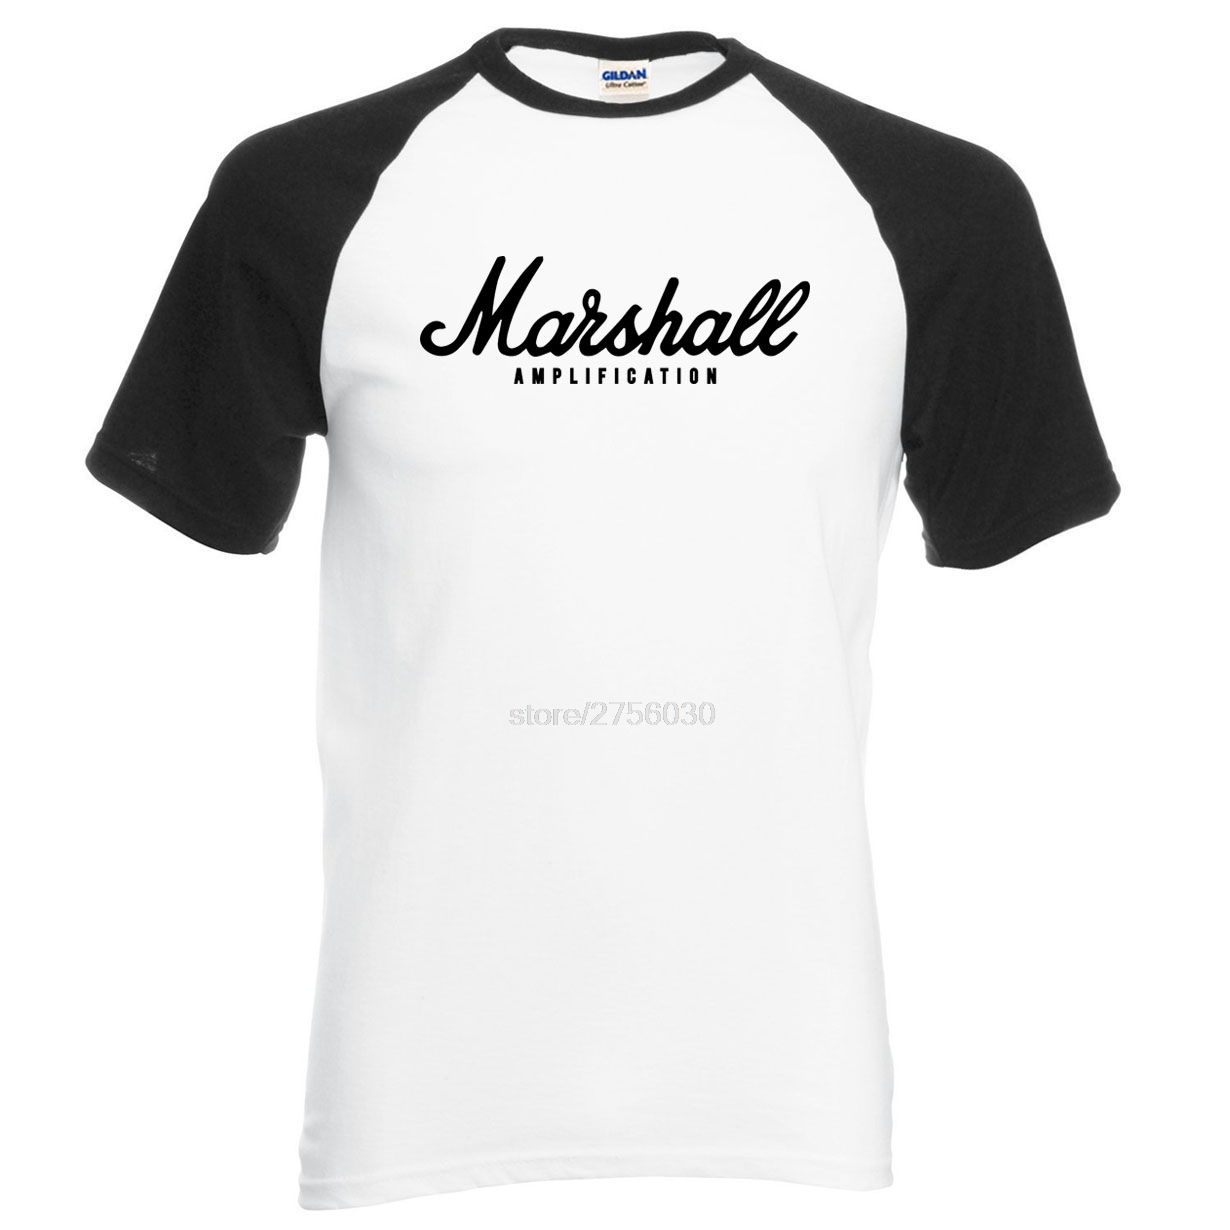 hot sale Rapper Marshall t shirt 2017 newest summer 100% cotton EMINEM raglan tee hip hop streetwear for fans hipster men S-2XL(China (Mainland))